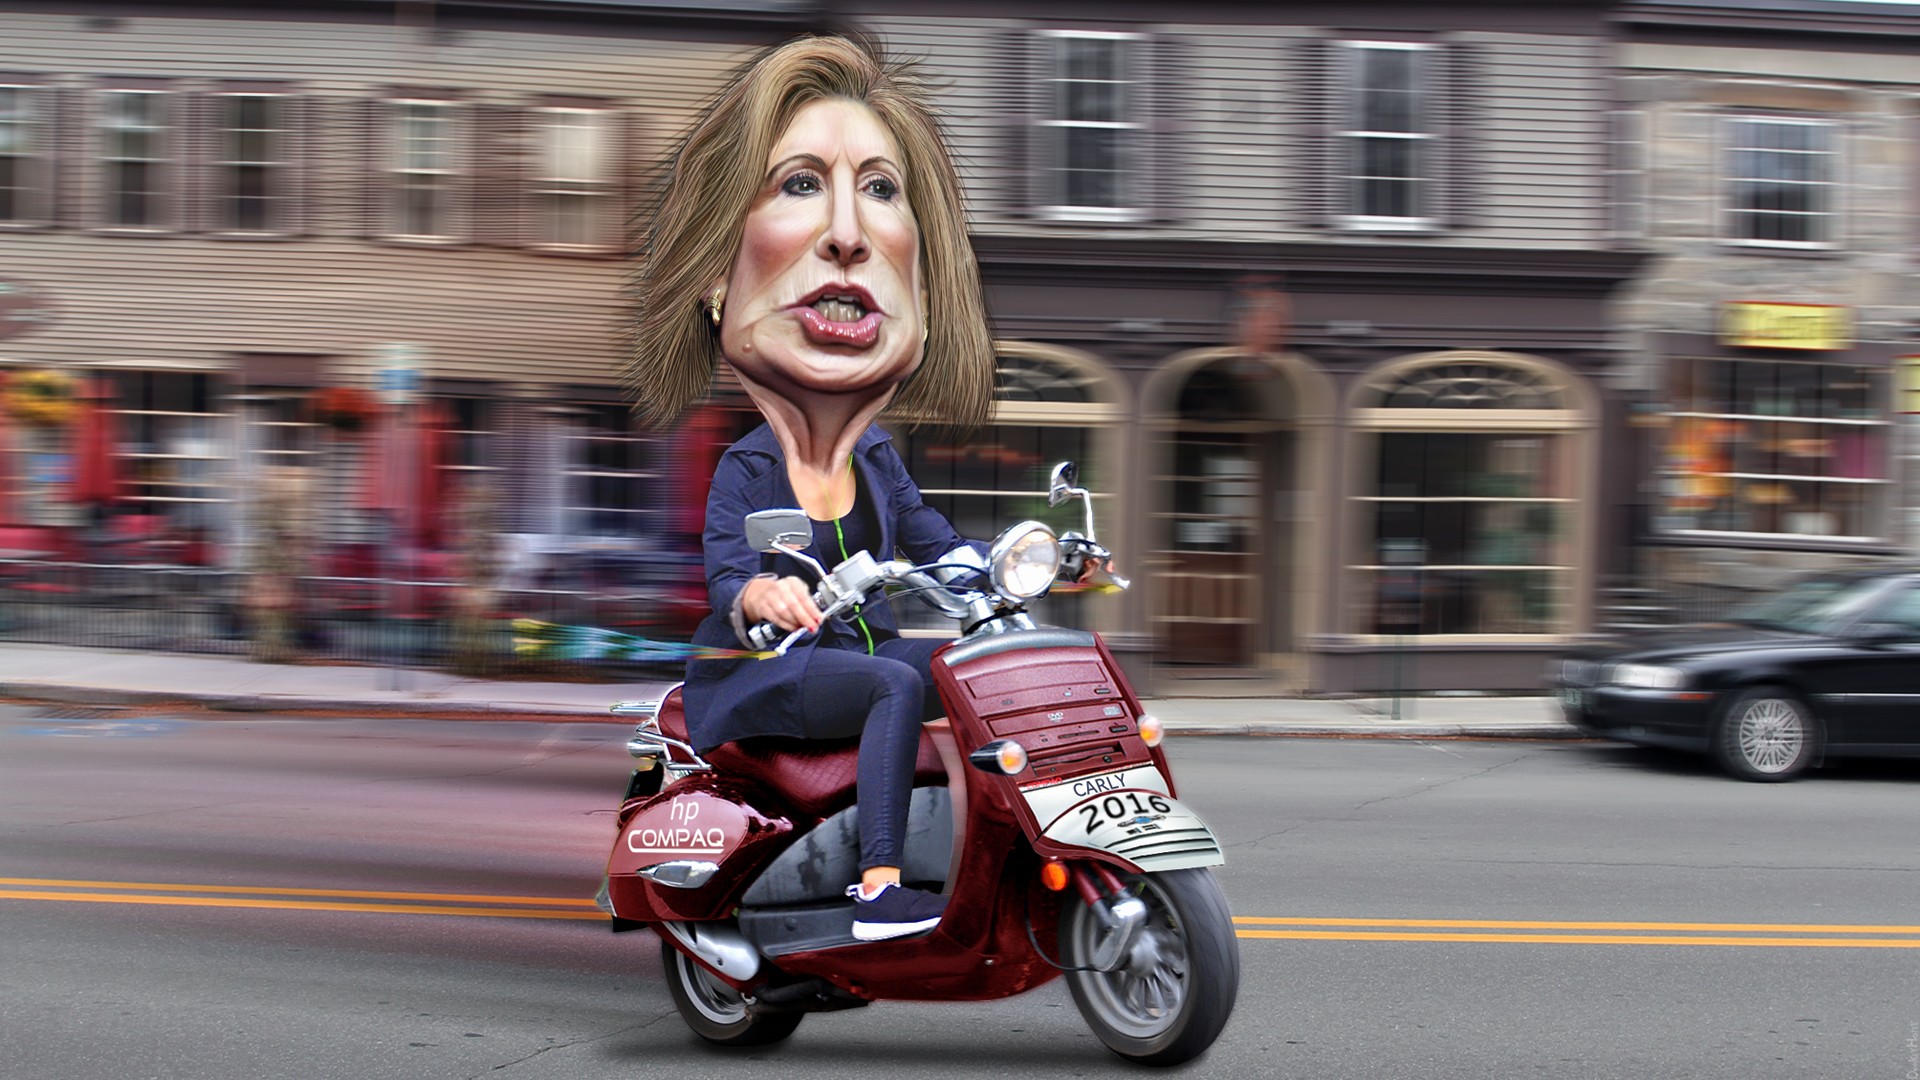 Carly_Fiorina_Scooter_1920x1080.jpg